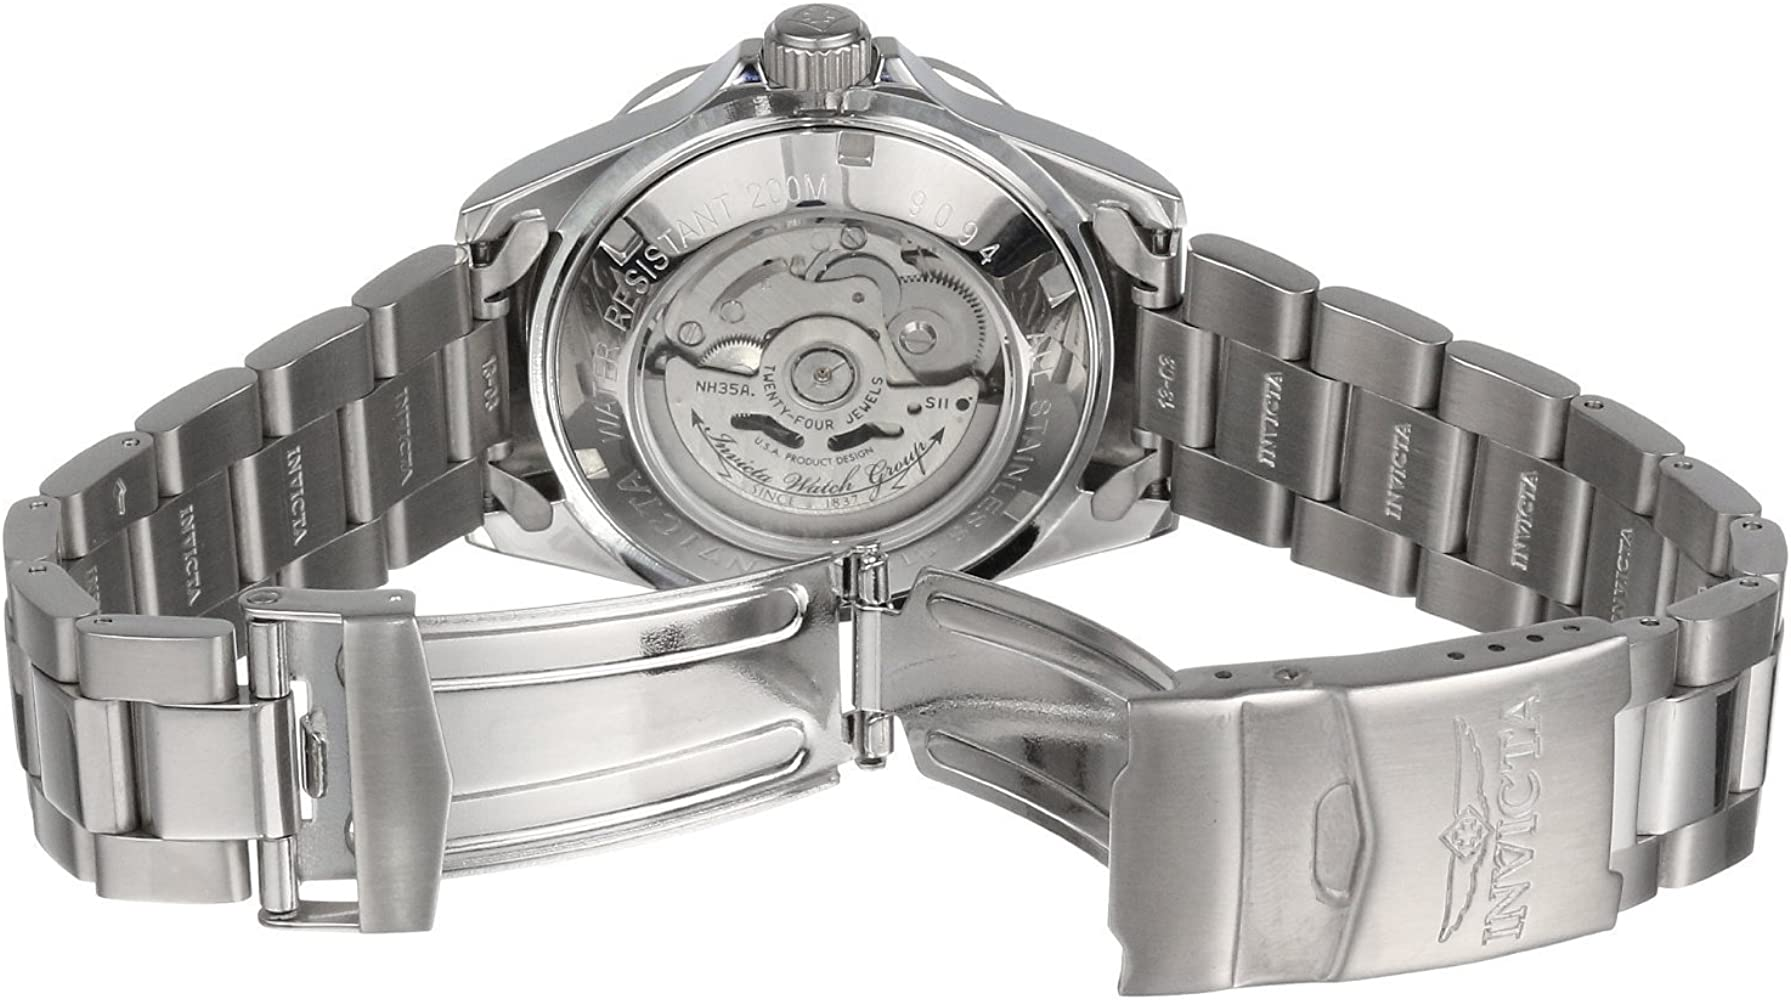 Invicta Men 9094 Pro Diver Collection Stainless Steel Automatic Dress Watch with Link Bracelet